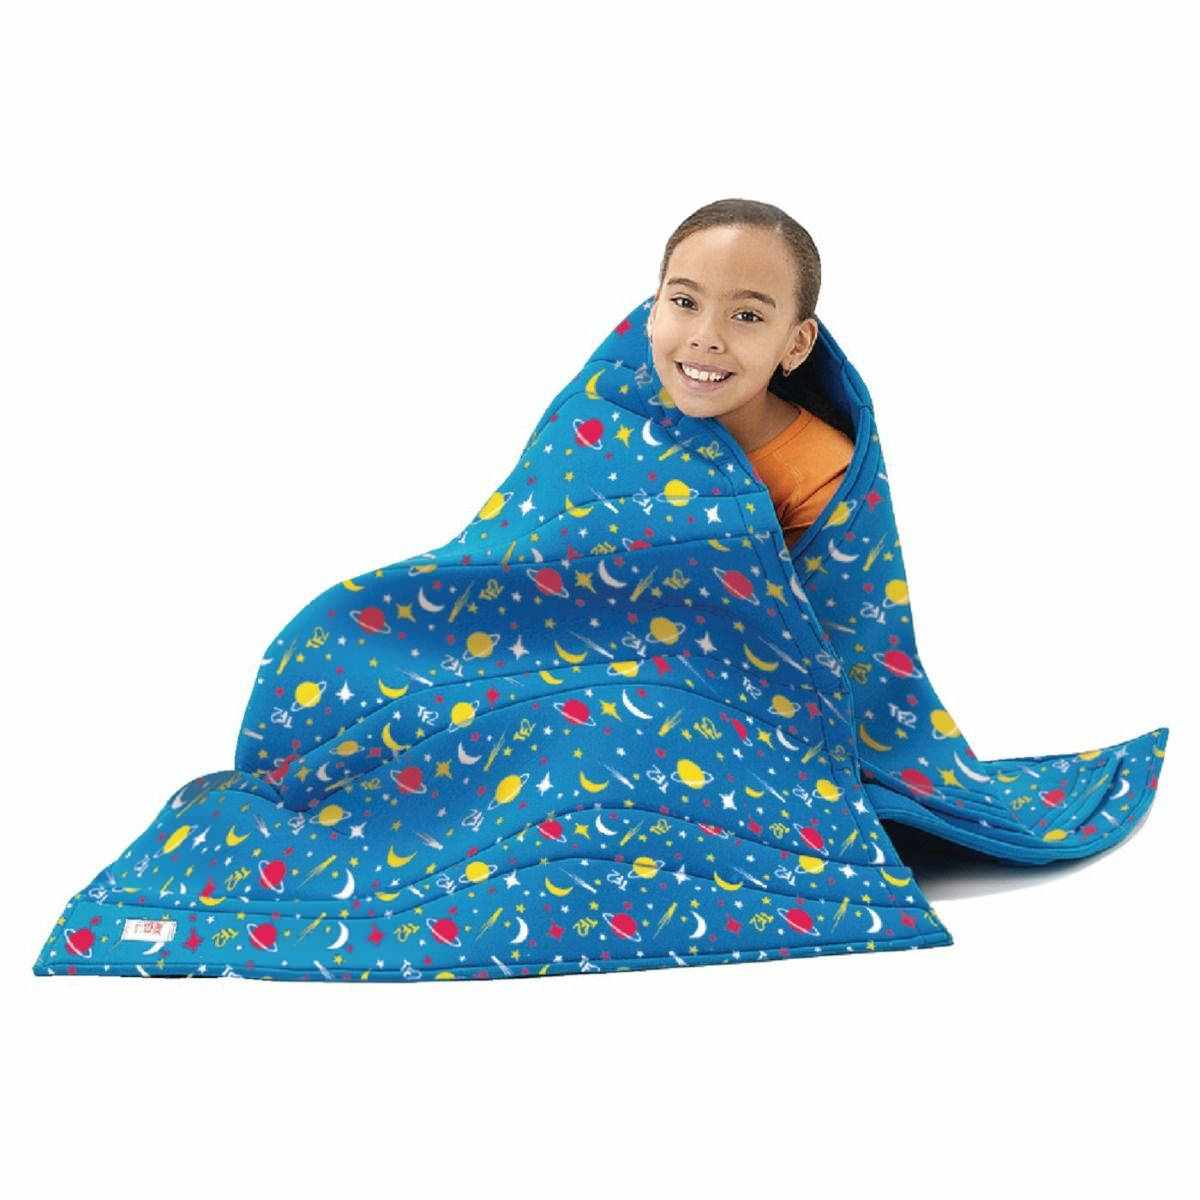 Tumble Forms 2 Weighted Blanket | Performance Health